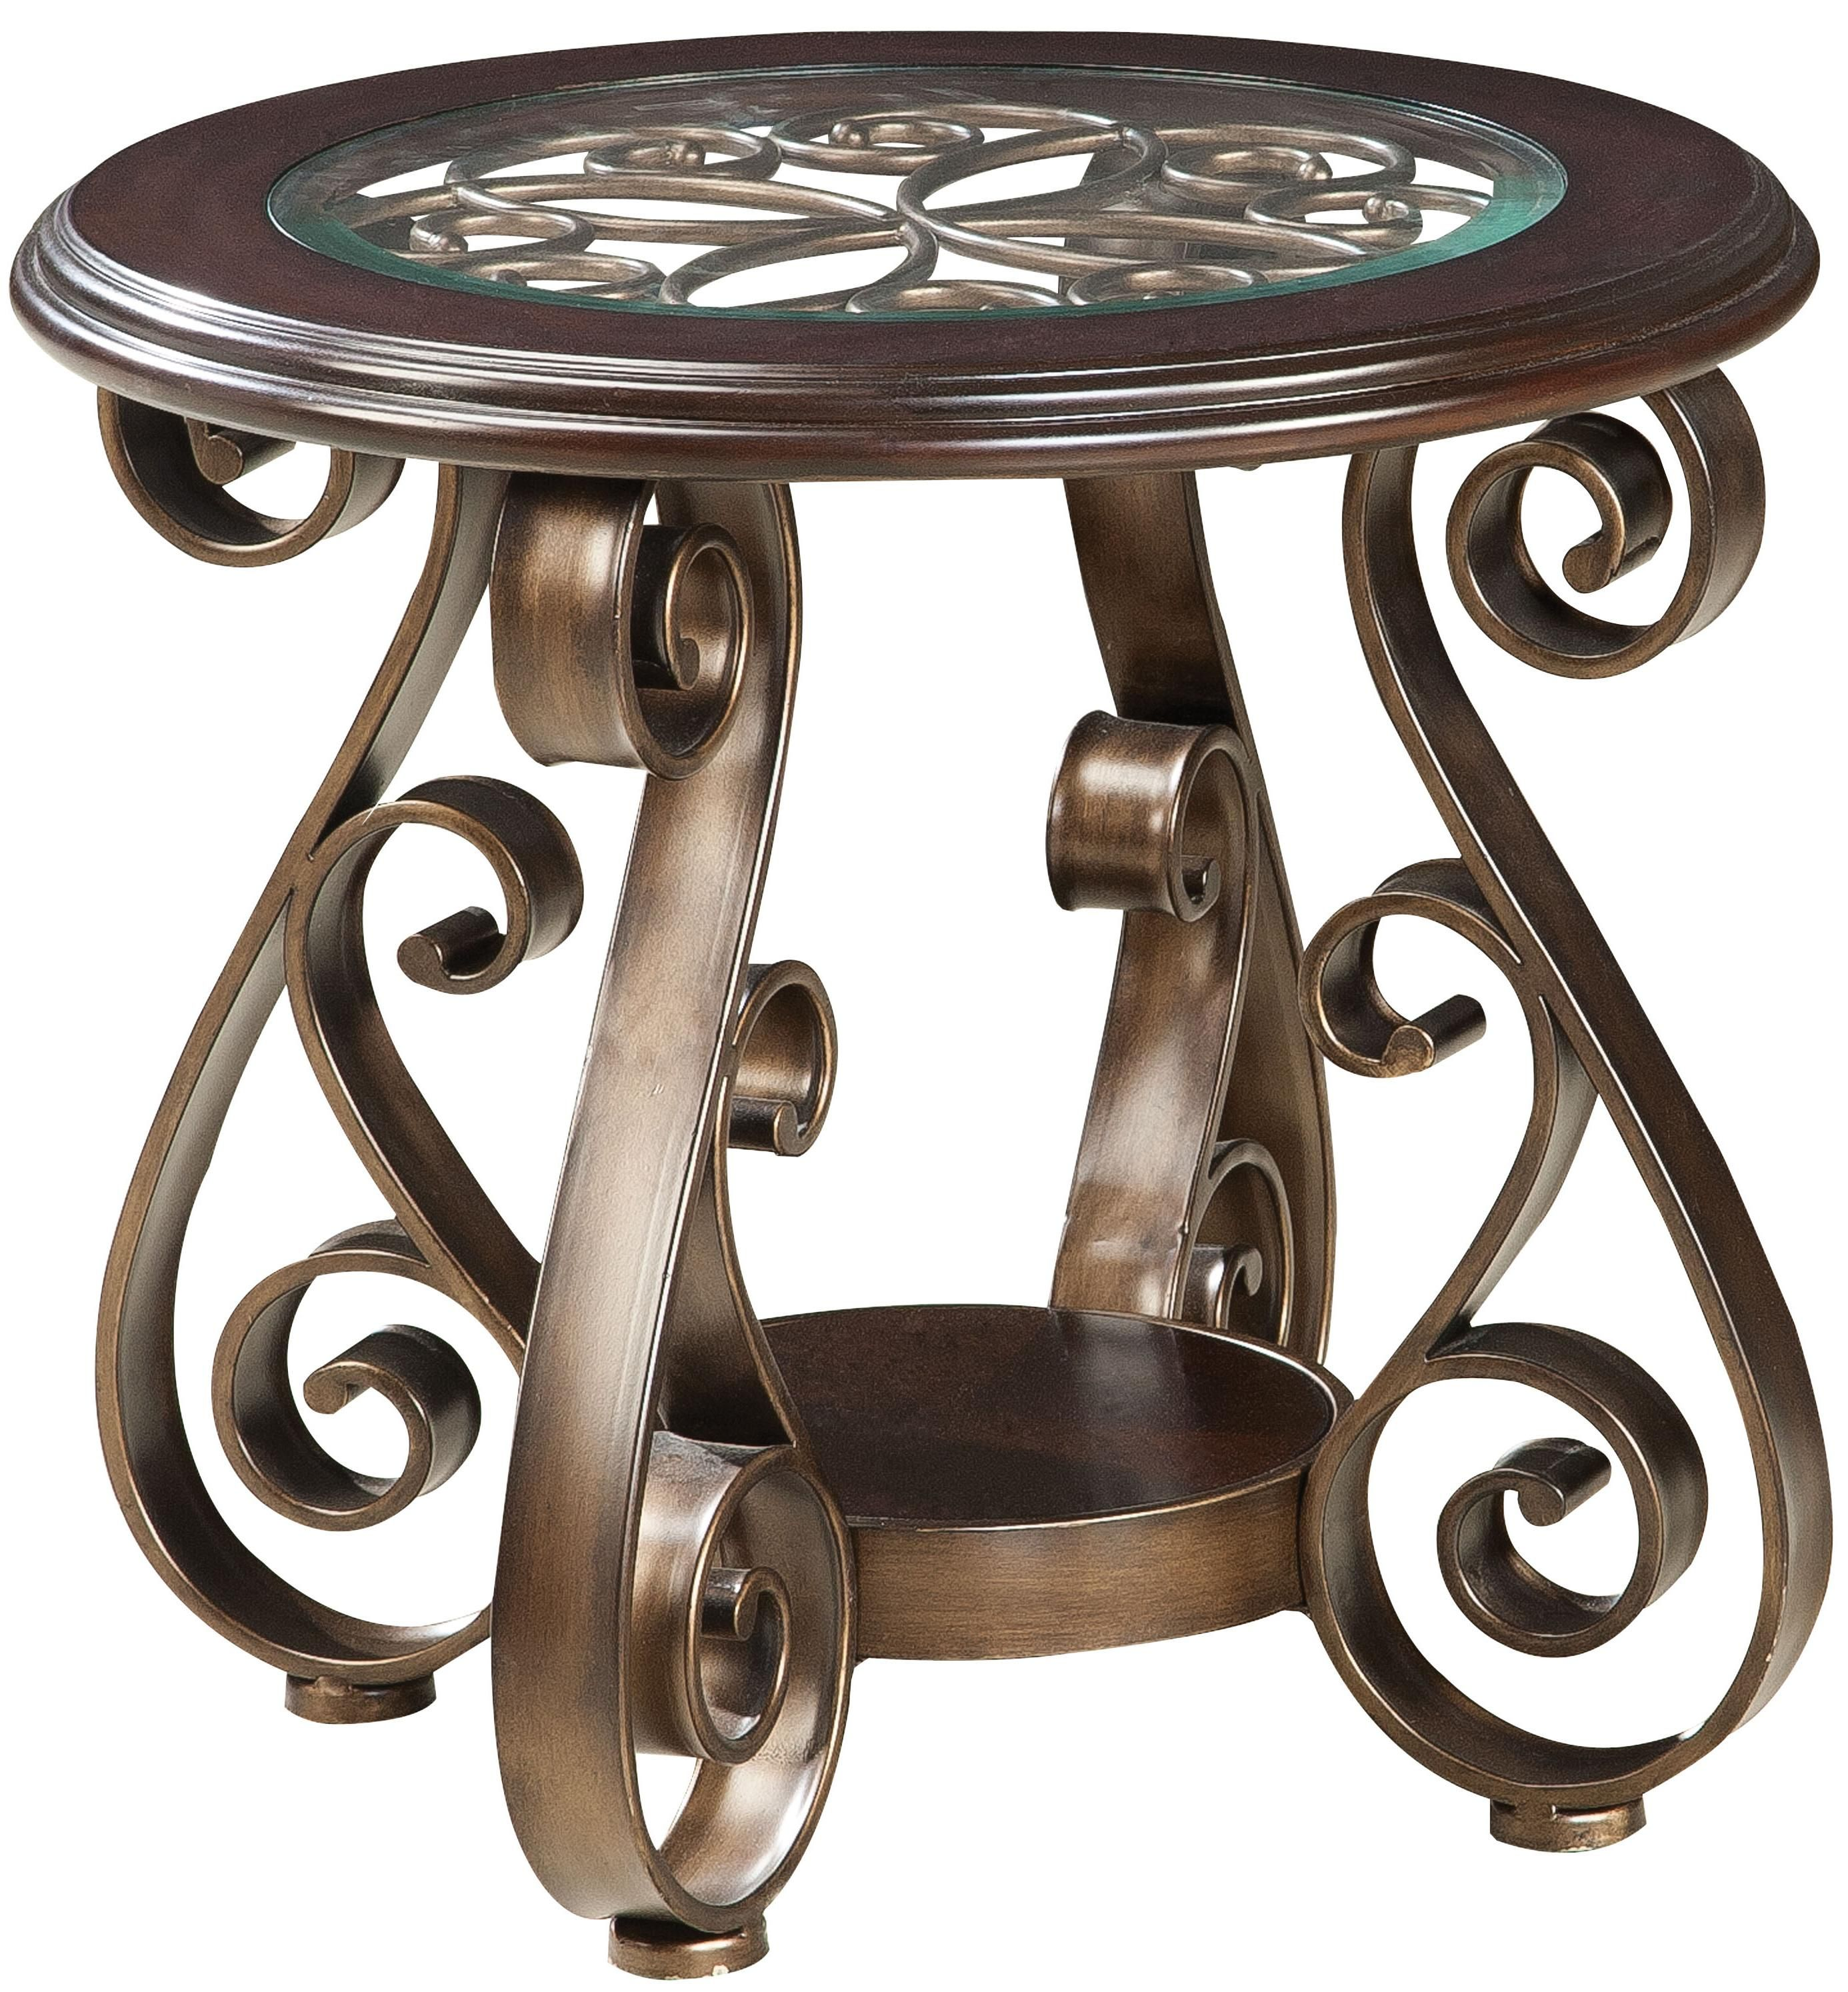 bombay old world end table with glass top and scroll legs company marble accent standard furniture great american home memphis southaven round nightstand tablecloth acrylic side